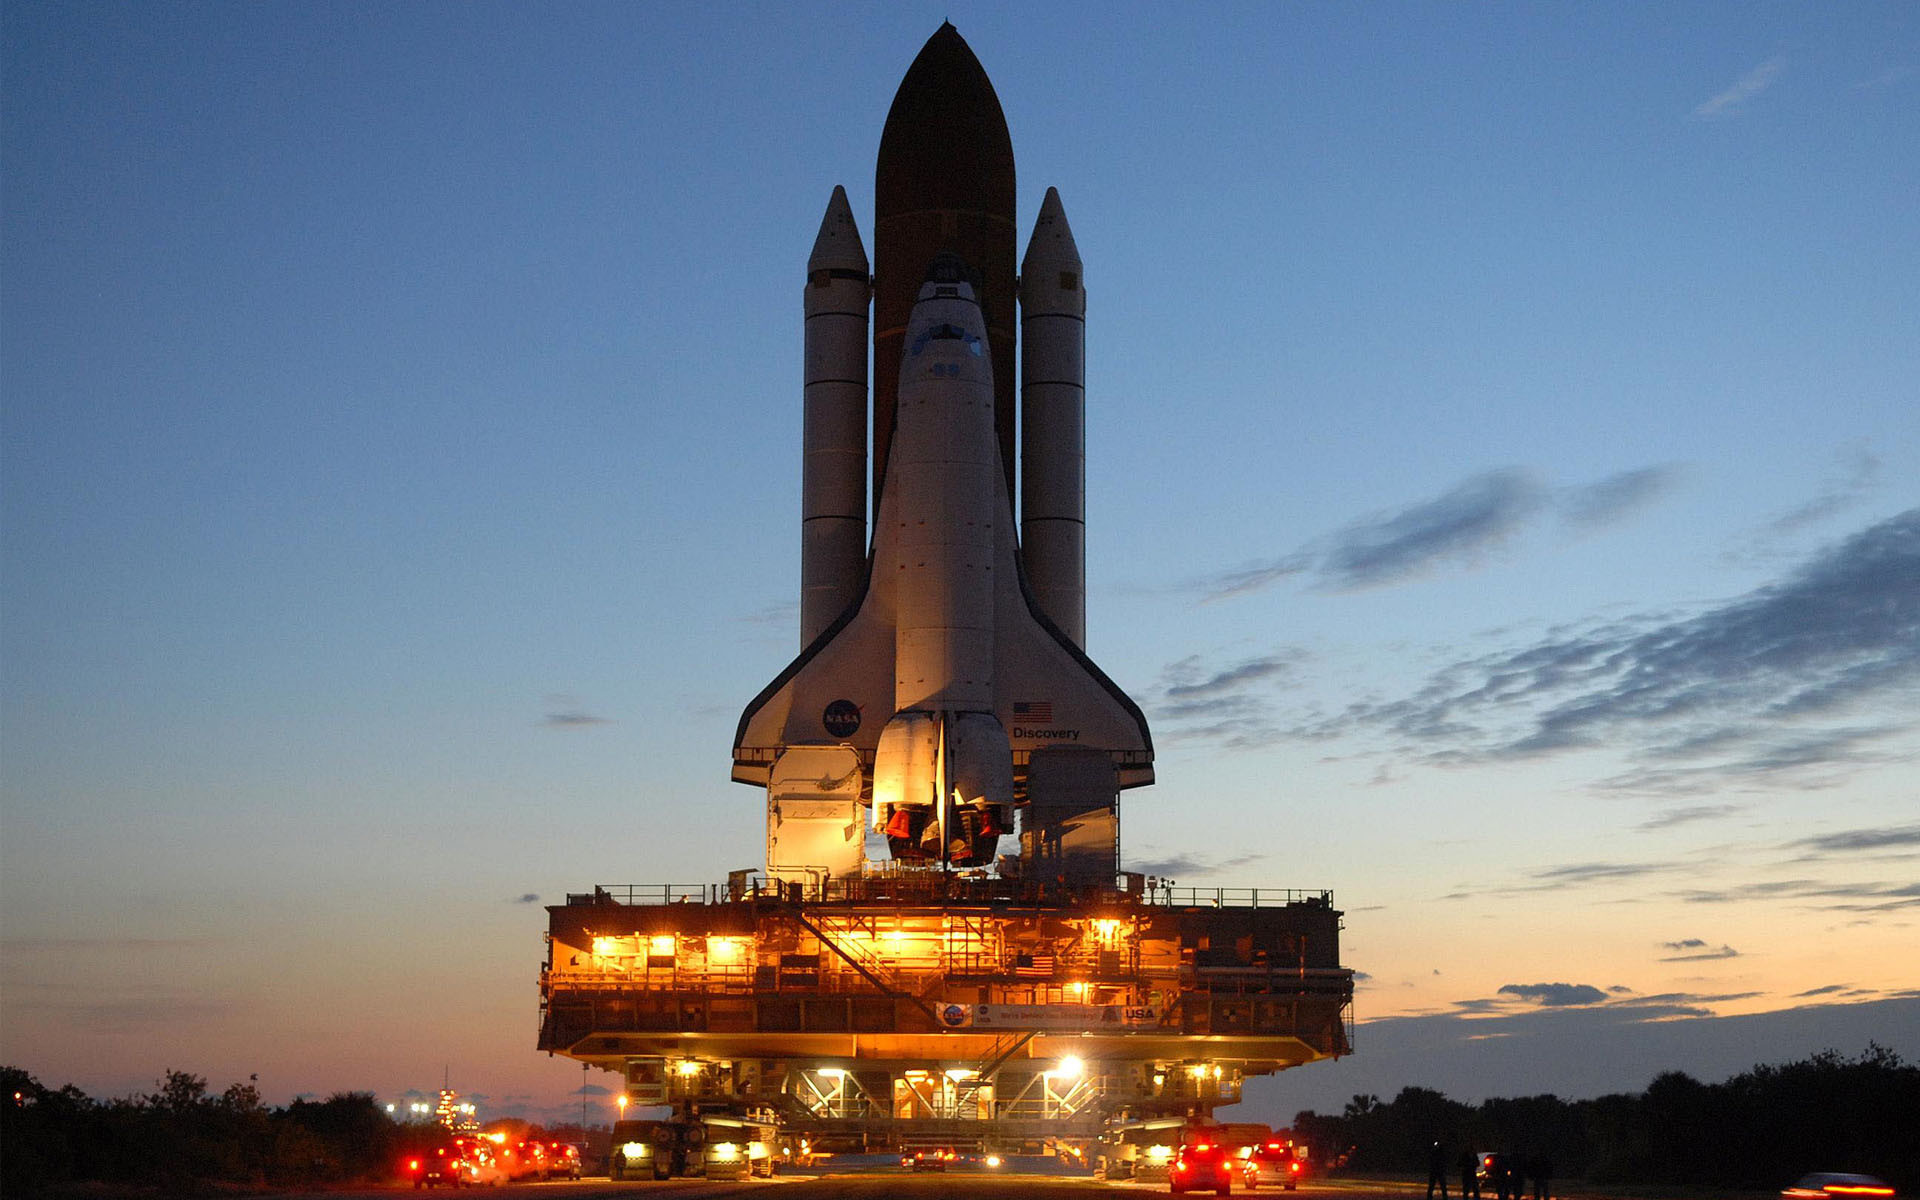 1920x1200 nasa space shuttle discovery is ready for launch hd wallpapers high  definition amazing cool desktop wallpapers for windows mac download free  1920×1200 ...